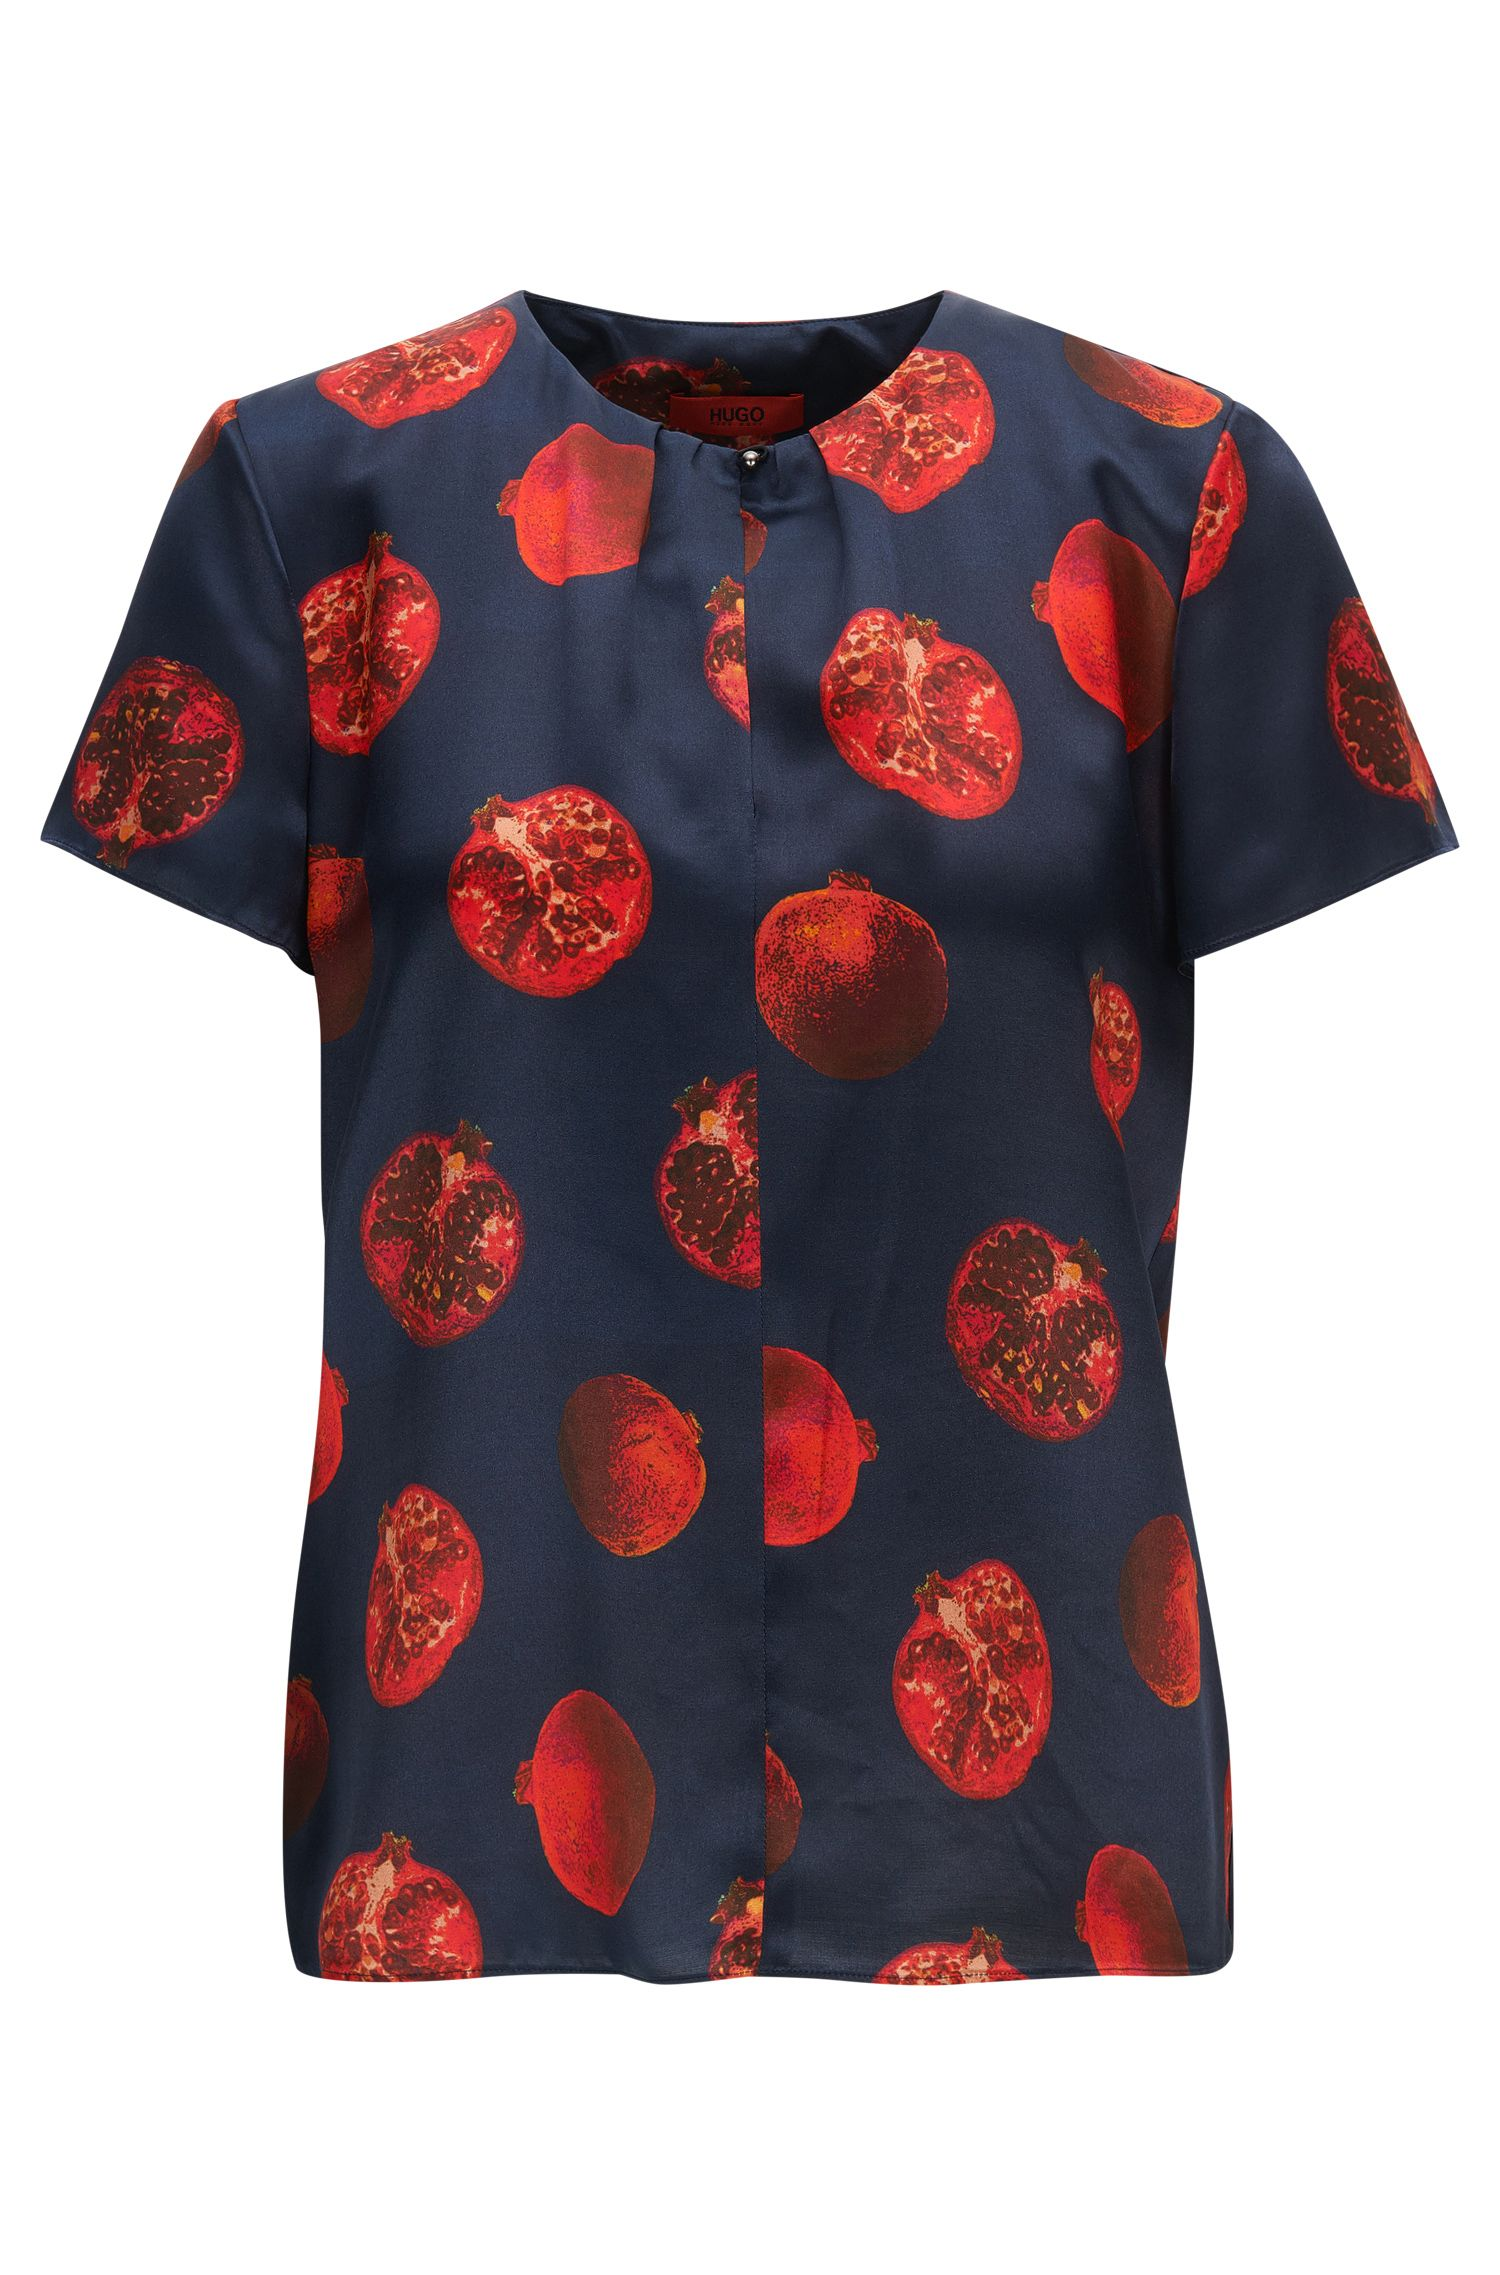 Pomegranate-print top with keyhole neckline